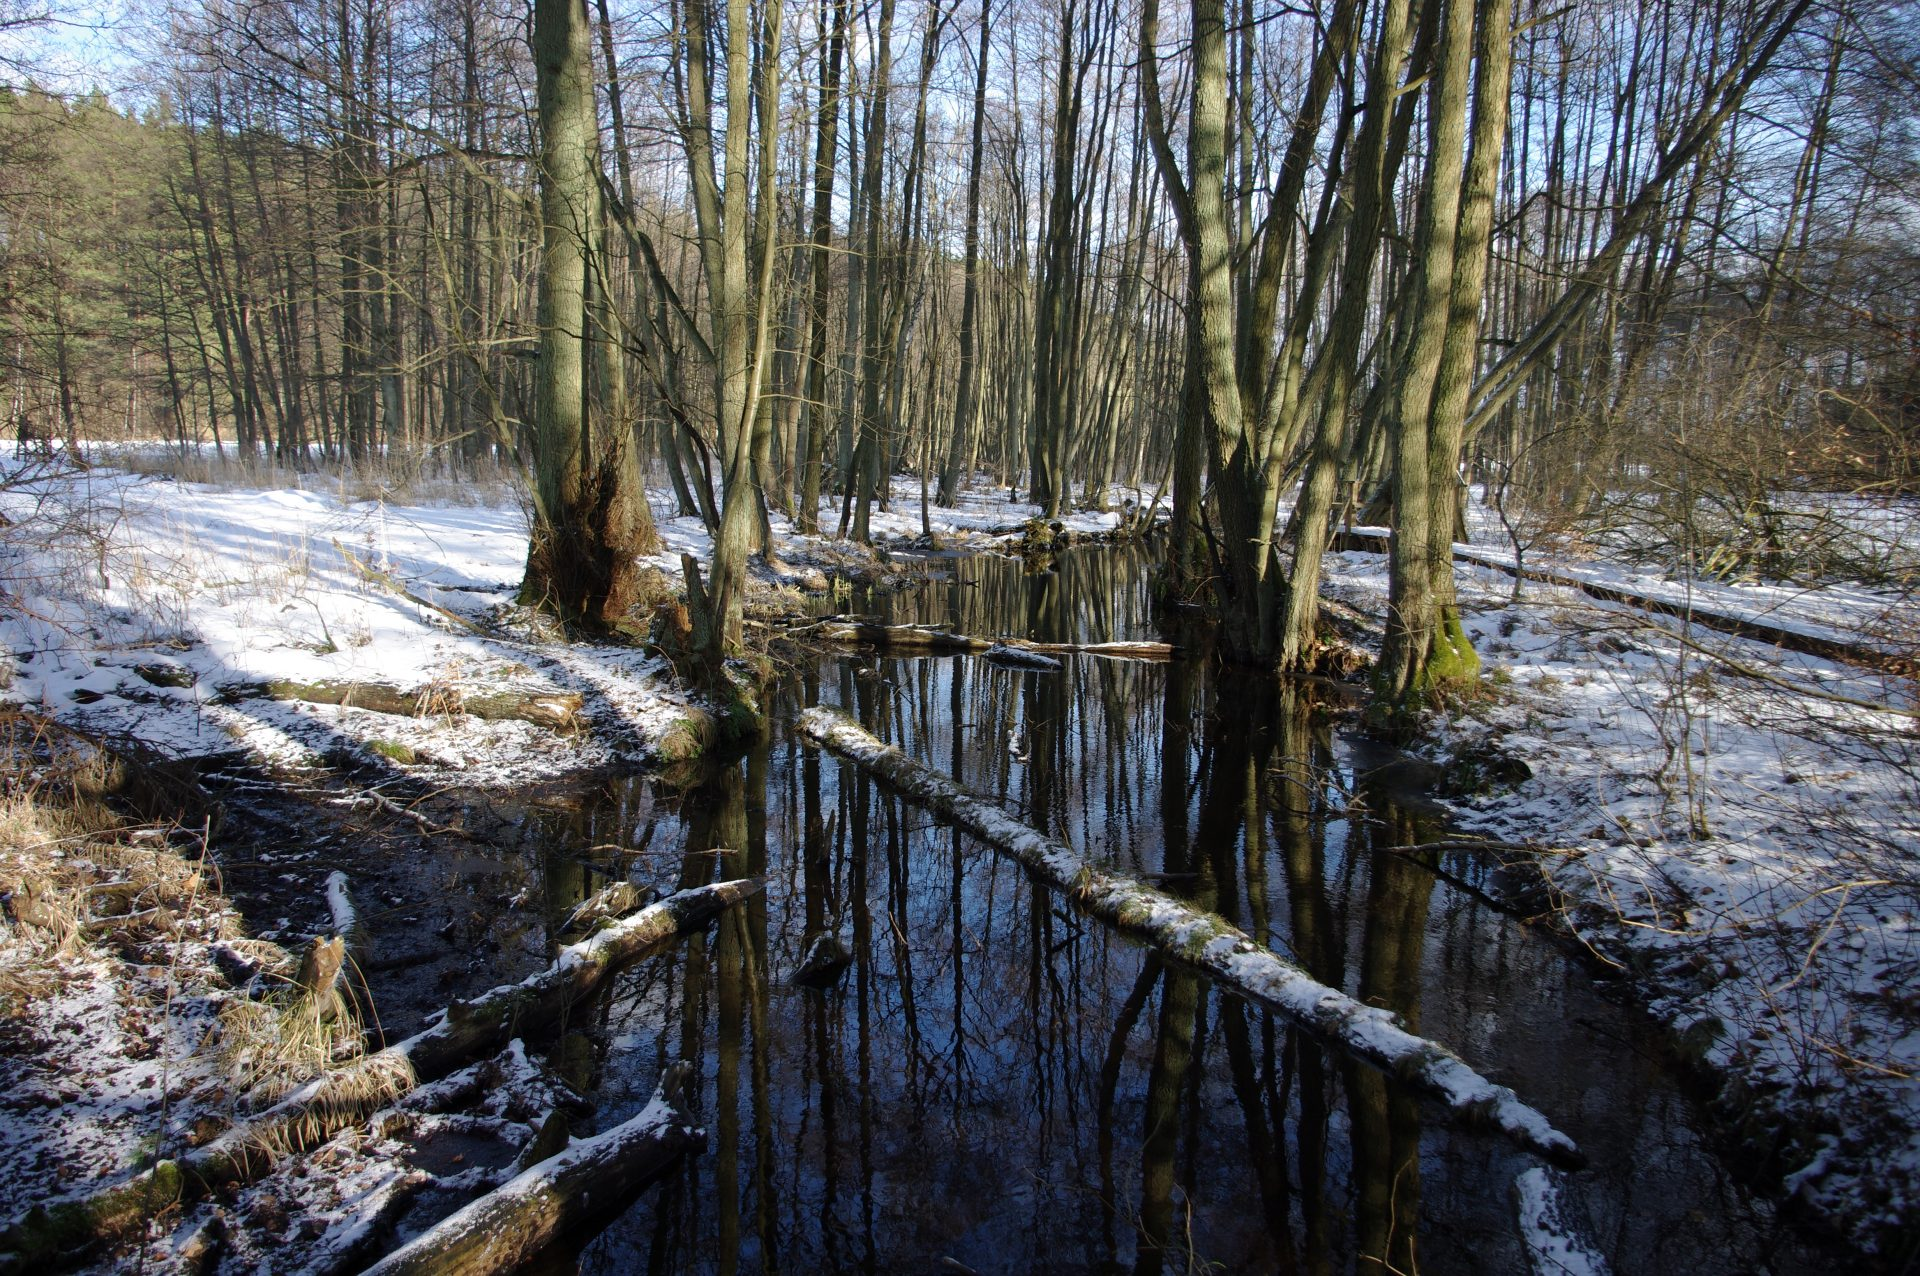 20100306-micha-b-anni-071-winter-seerundgang